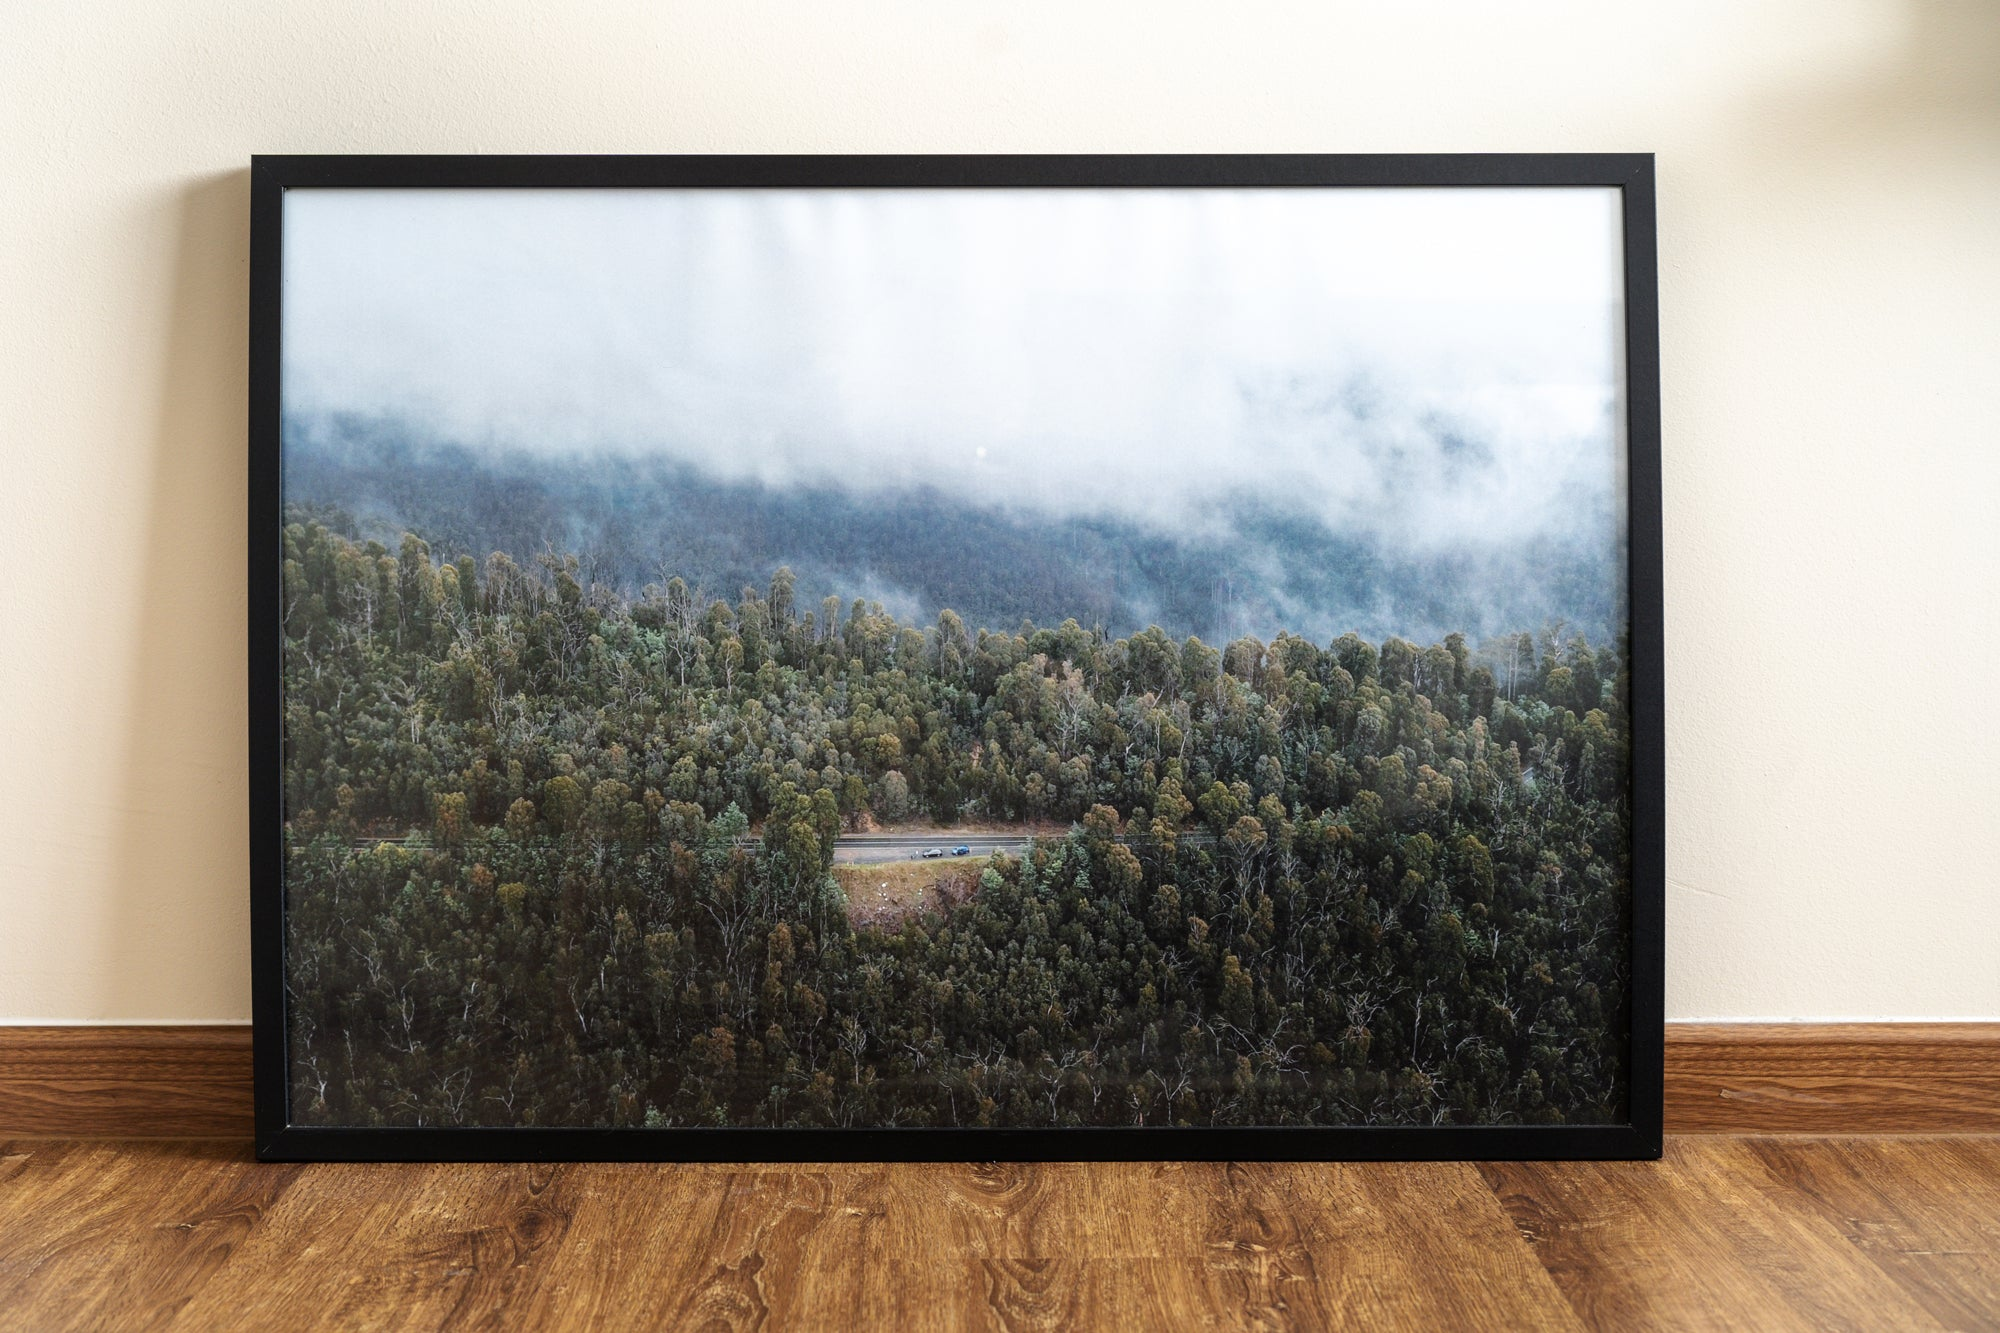 drone shot of forest in black photo frame